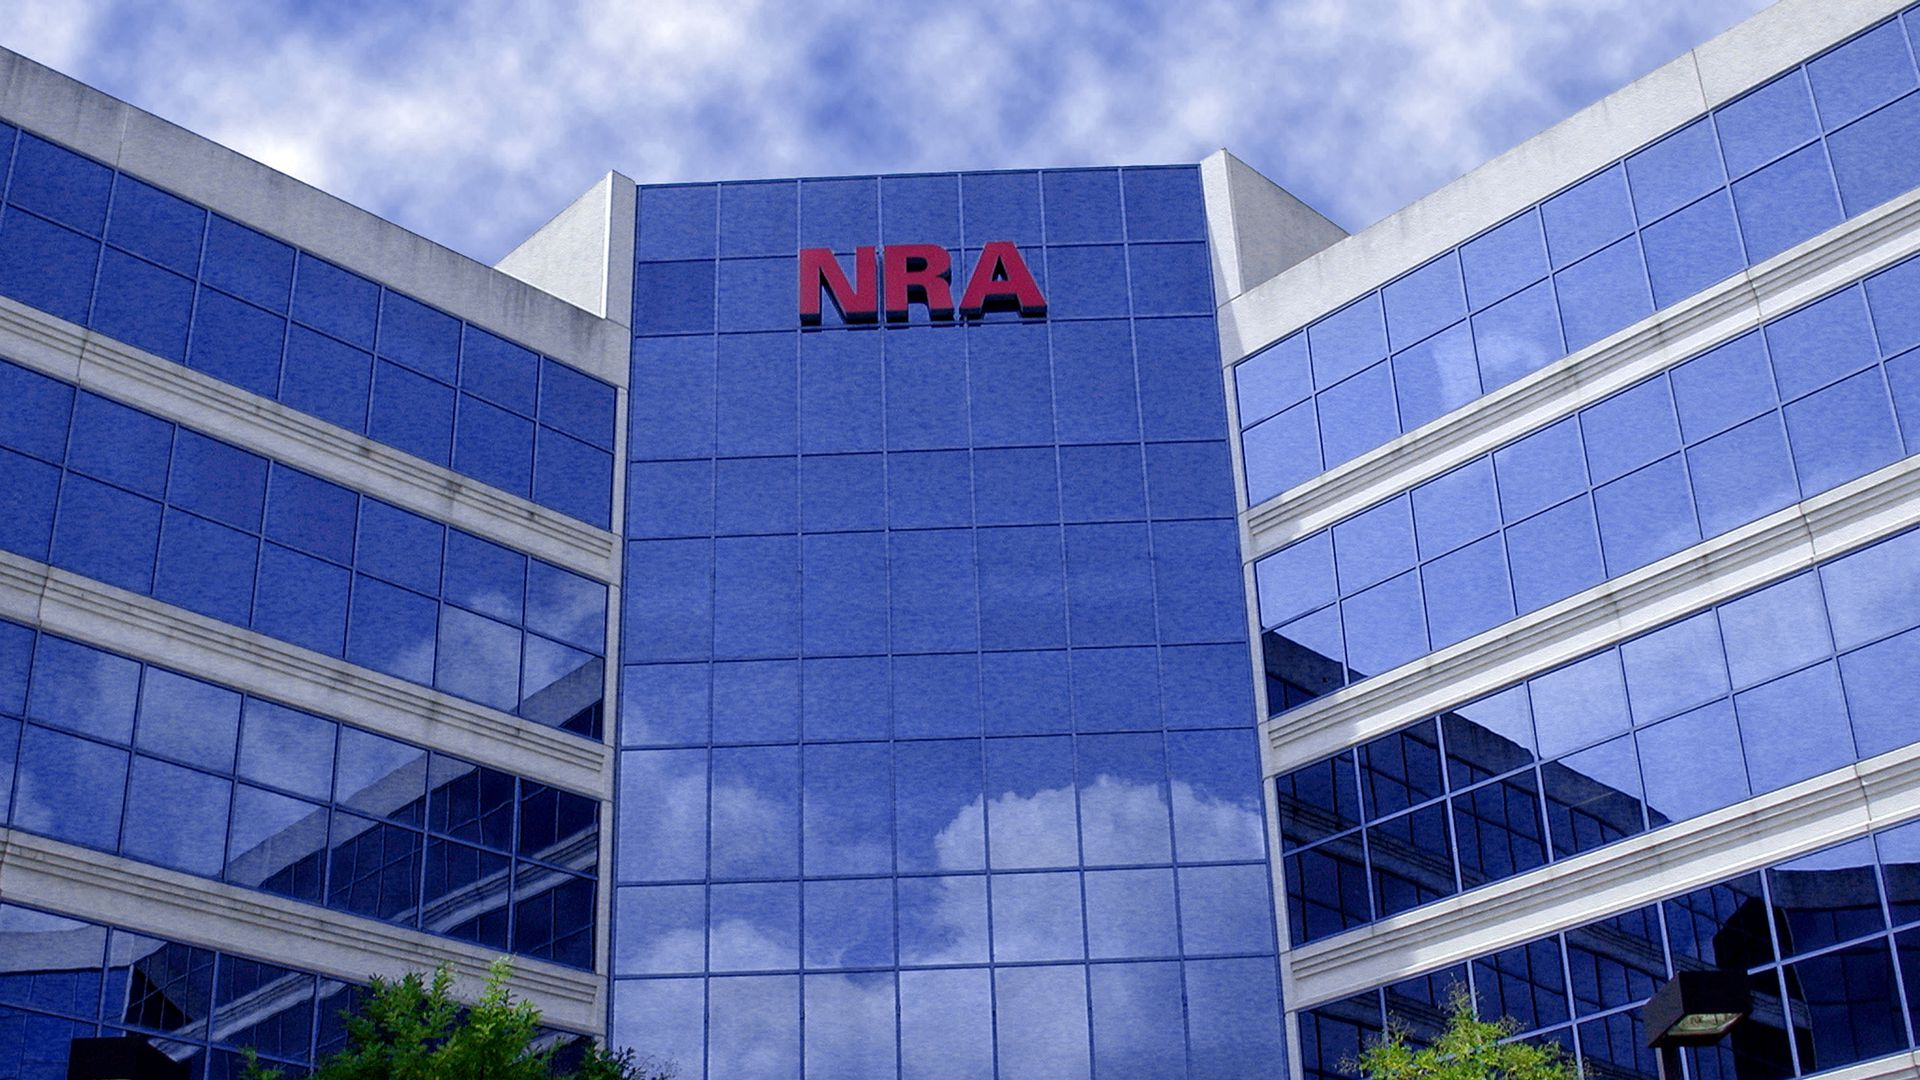 NRA shuts down NRATV production, cuts ties with advertising firm: NYT